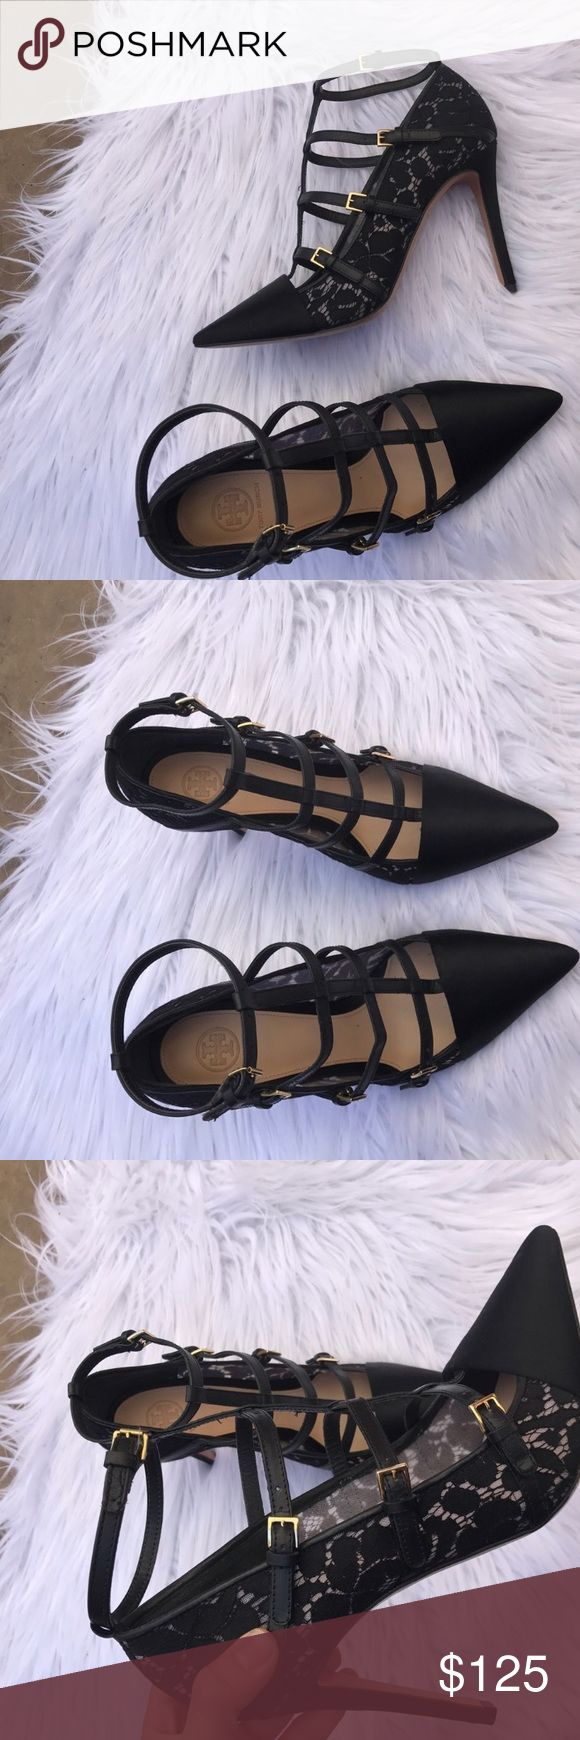 TORY BURCH SZ 10 CAGED SHOES HEELS PUMPS LACE Beautiful and pretty much new , just don't have the box:) 100% authentic Tory Burch Shoes